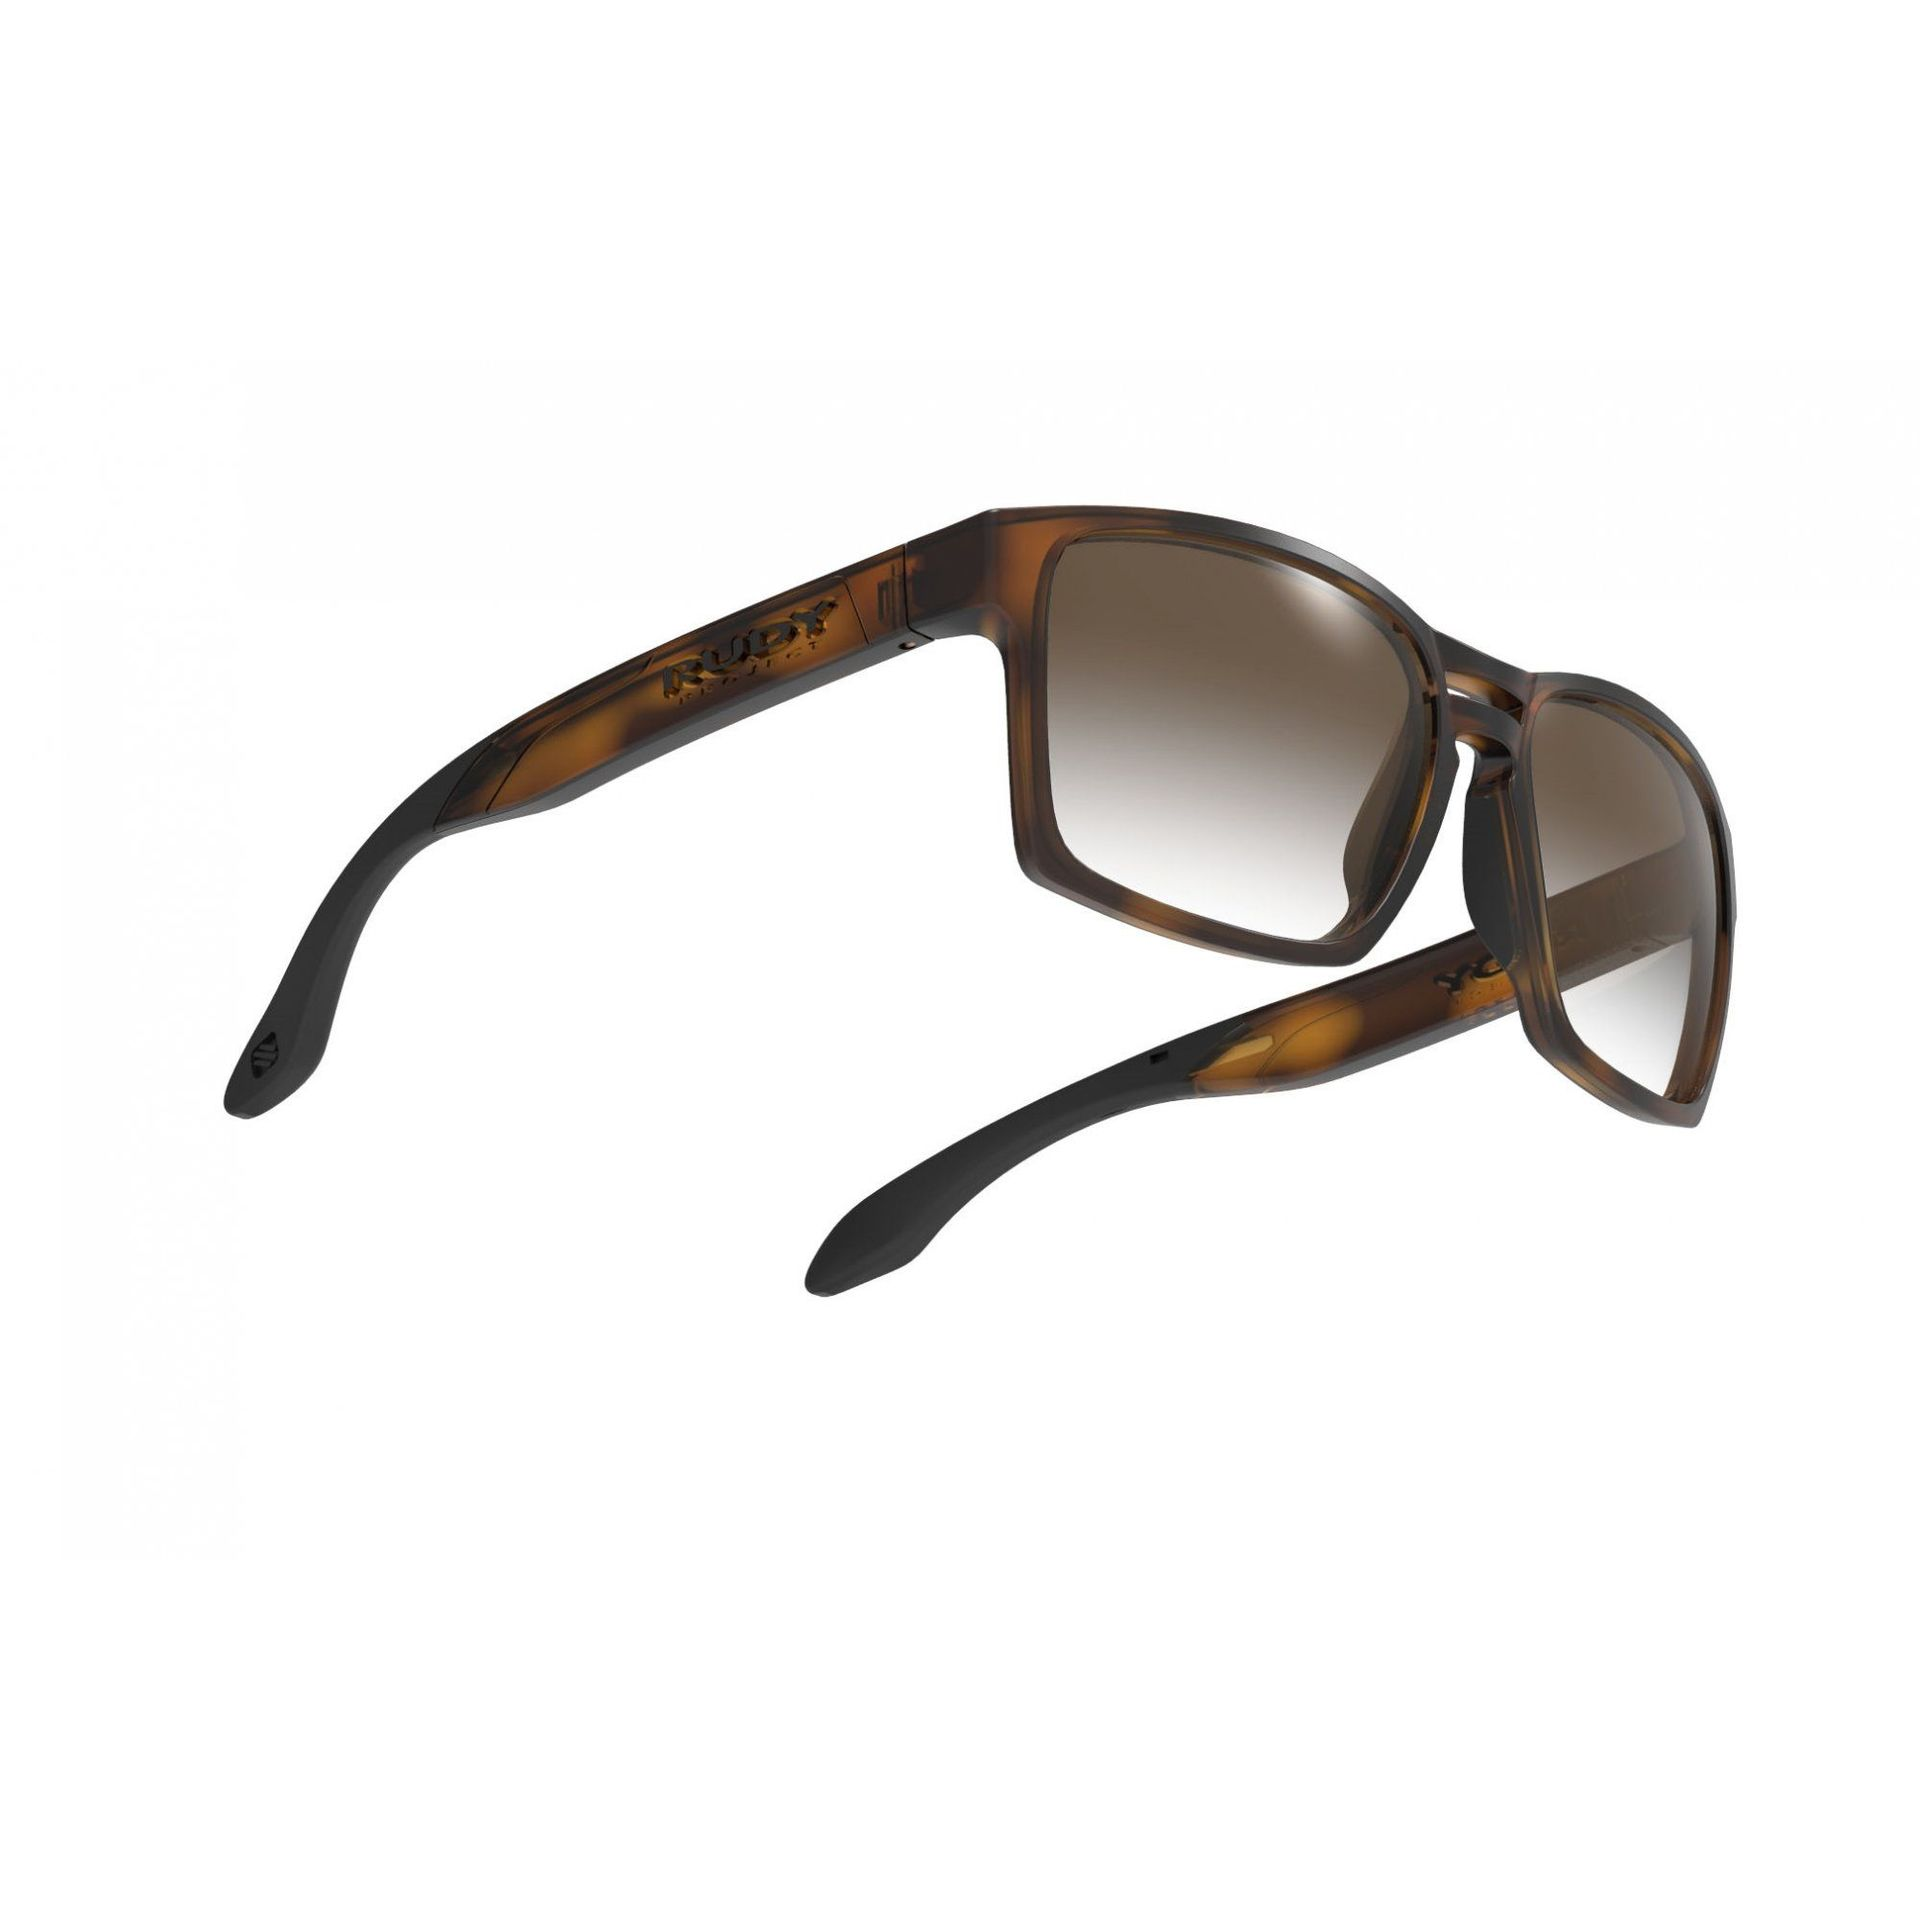 OKULARY RUDY PROJECT SPINAIR 57 DEMI TURTLE + BROWN DEG SP573650 3